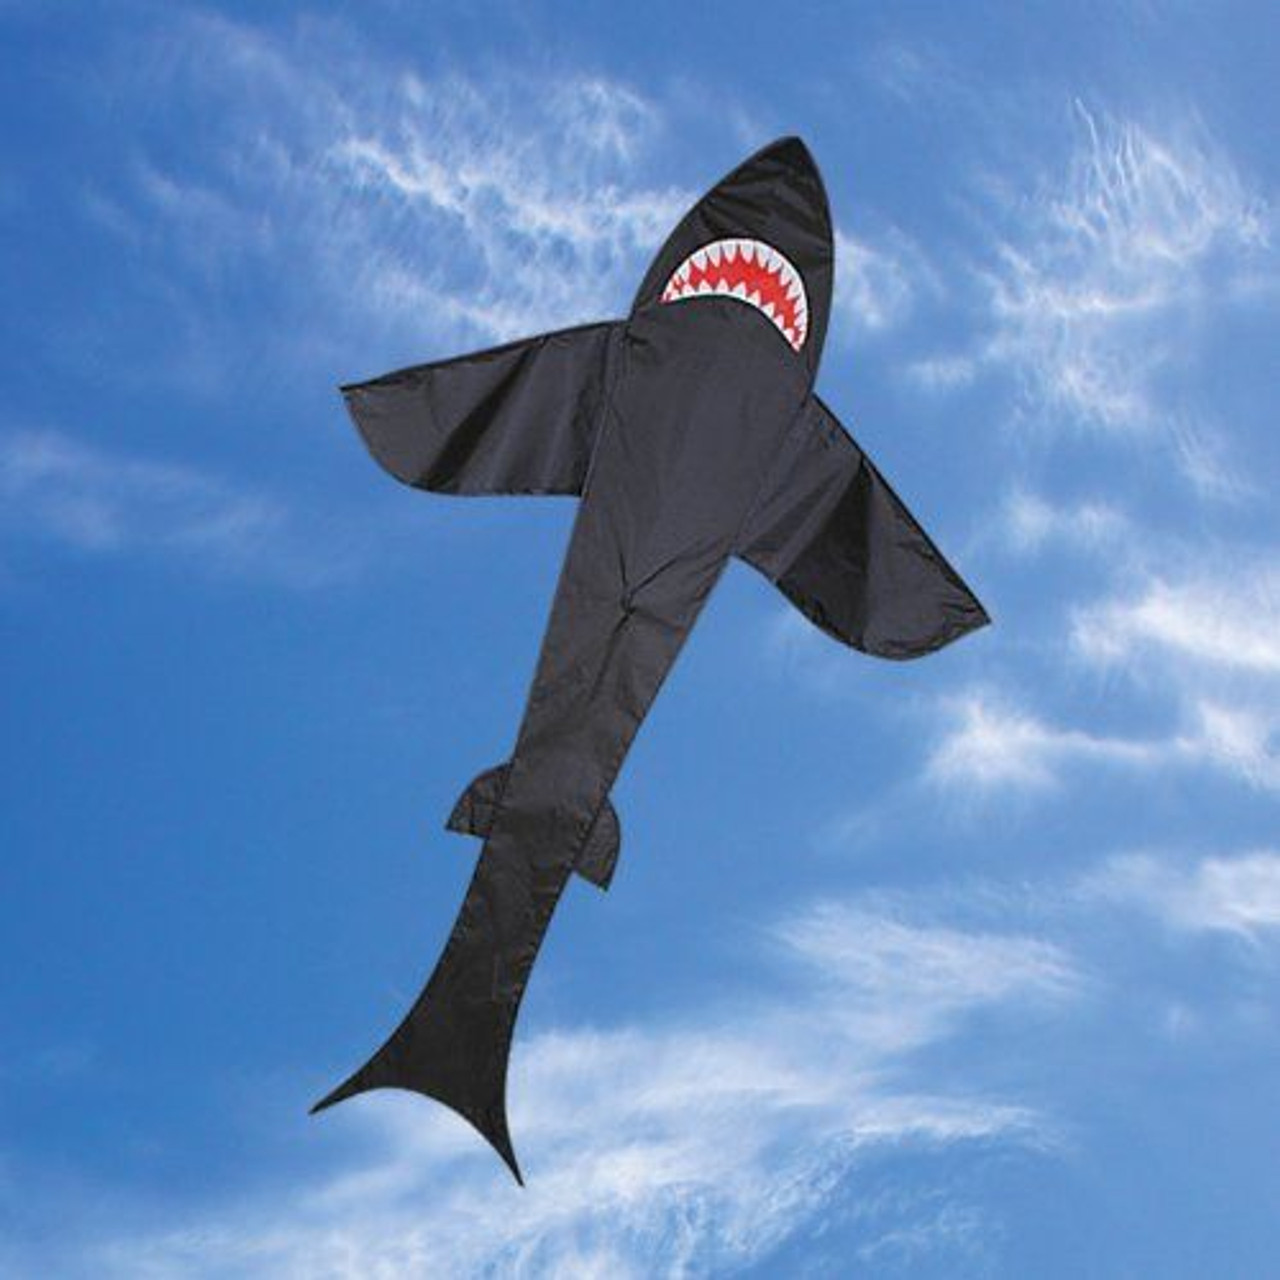 5ft. Black Shark Kite